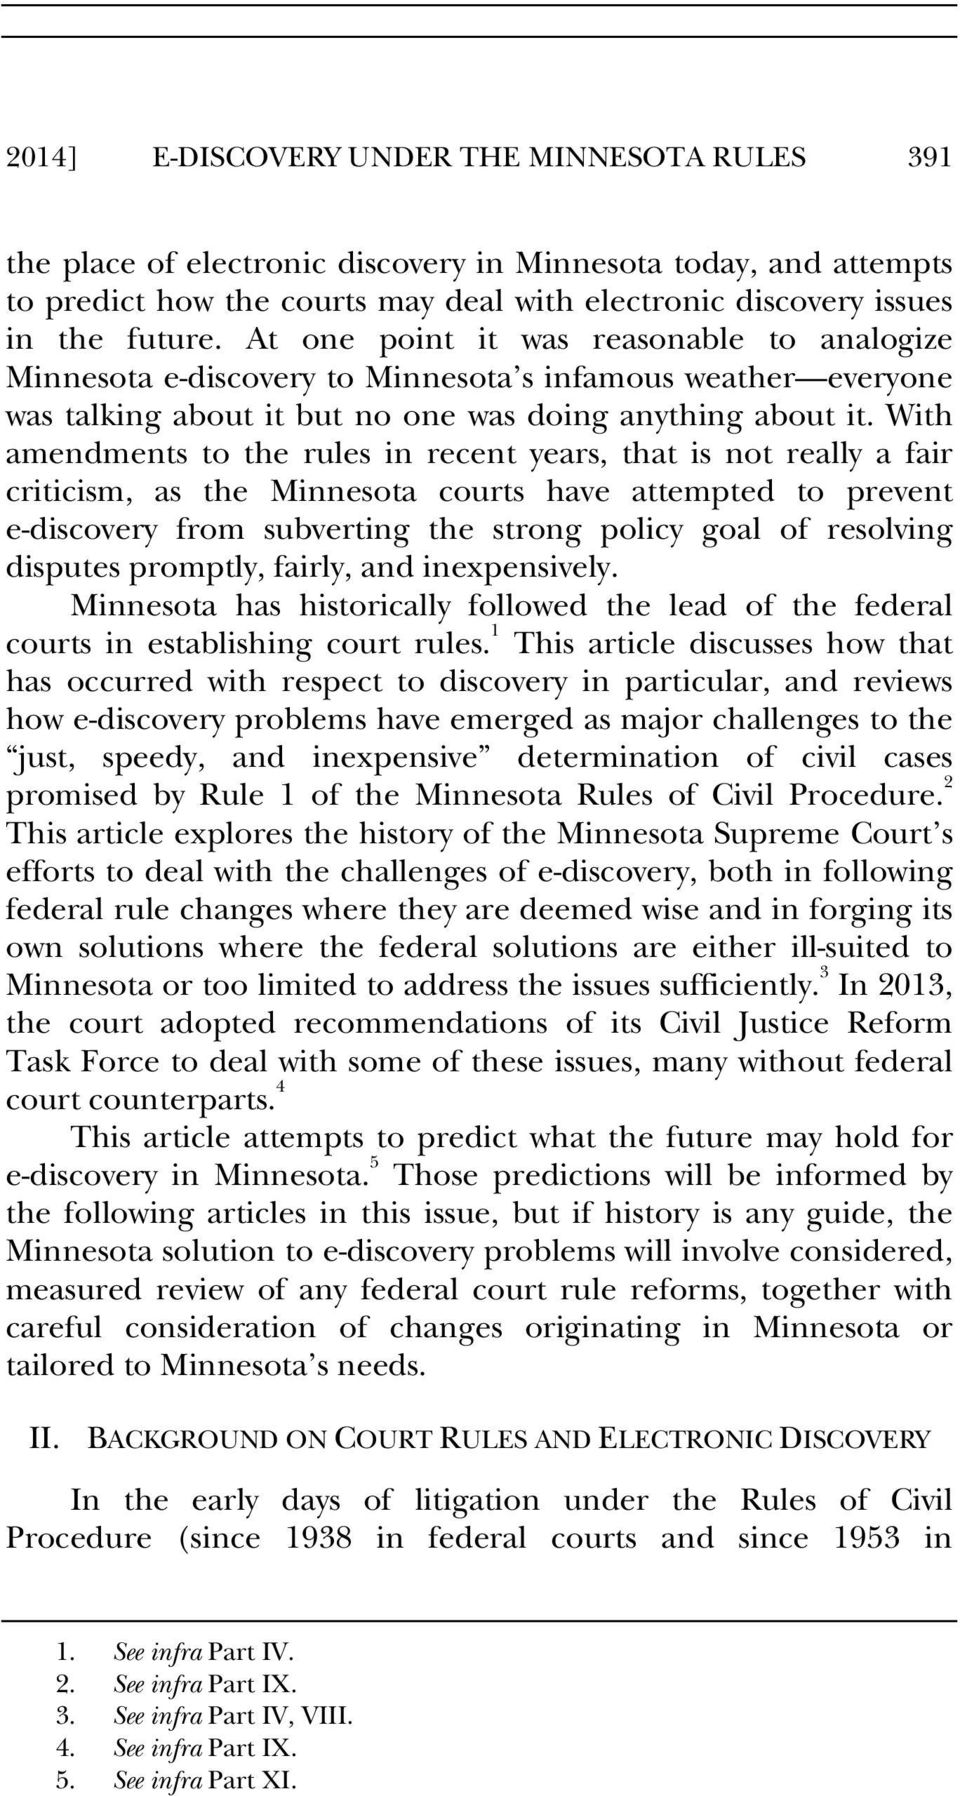 With amendments to the rules in recent years, that is not really a fair criticism, as the Minnesota courts have attempted to prevent e-discovery from subverting the strong policy goal of resolving